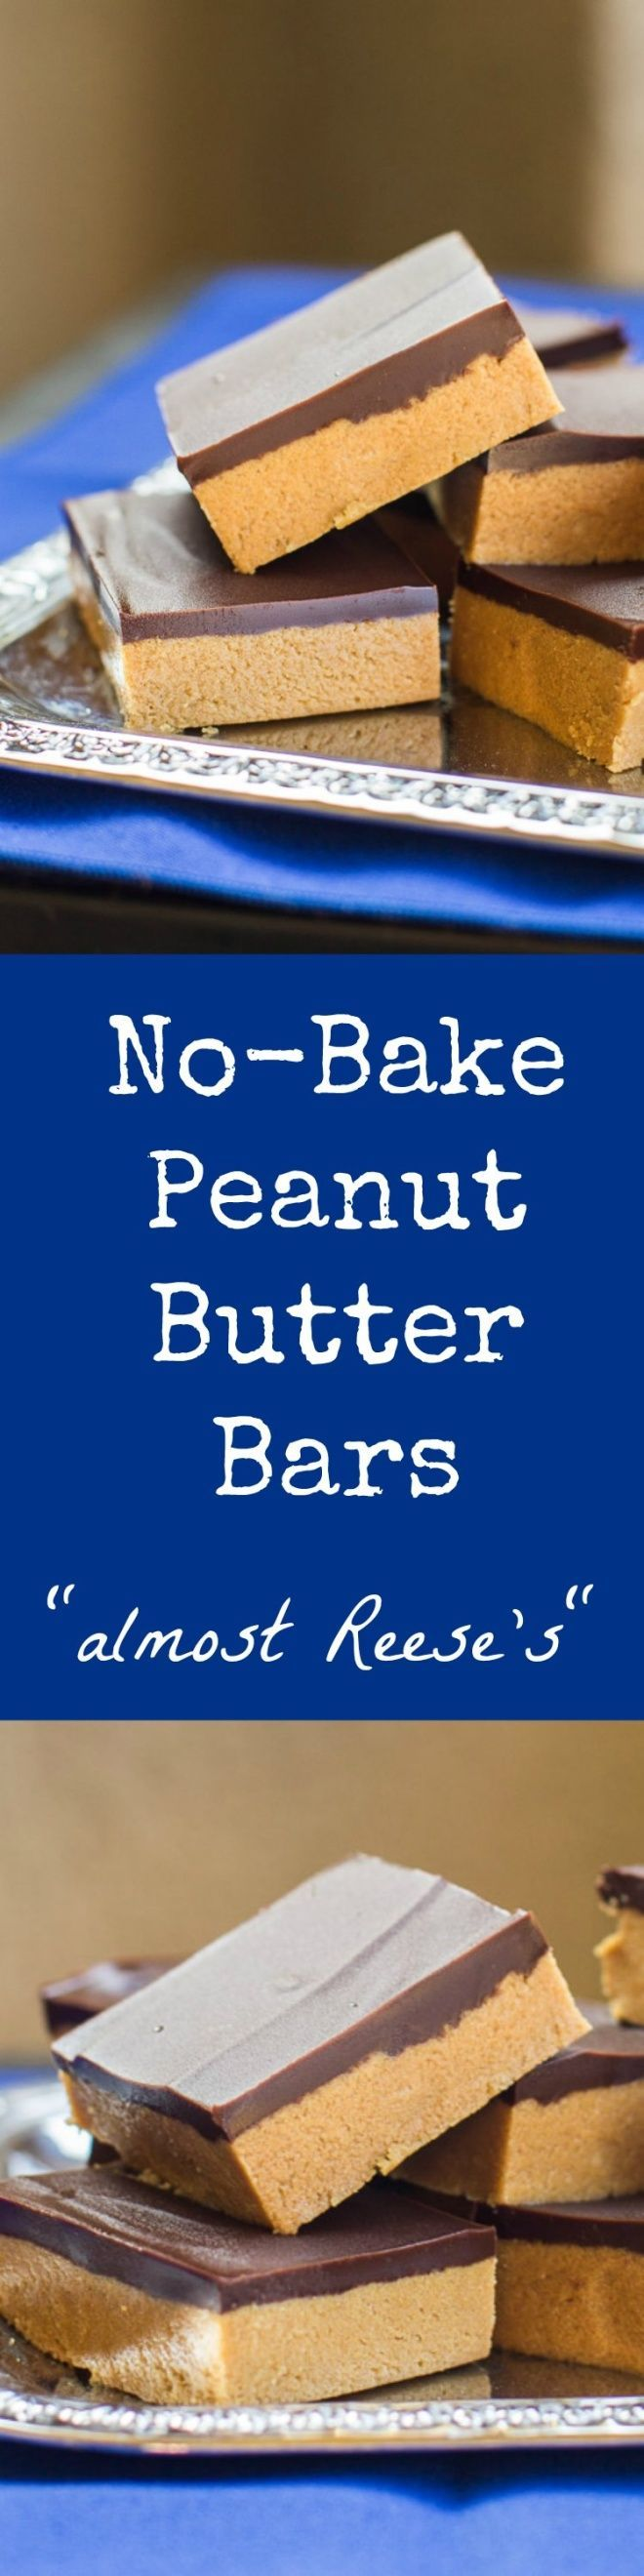 "No-Bake Peanut Butter Bars take only 5 ingredients and 10 minutes (plus chilling time). My Grandma calls them ""Almost Reese's"" for good reason!"